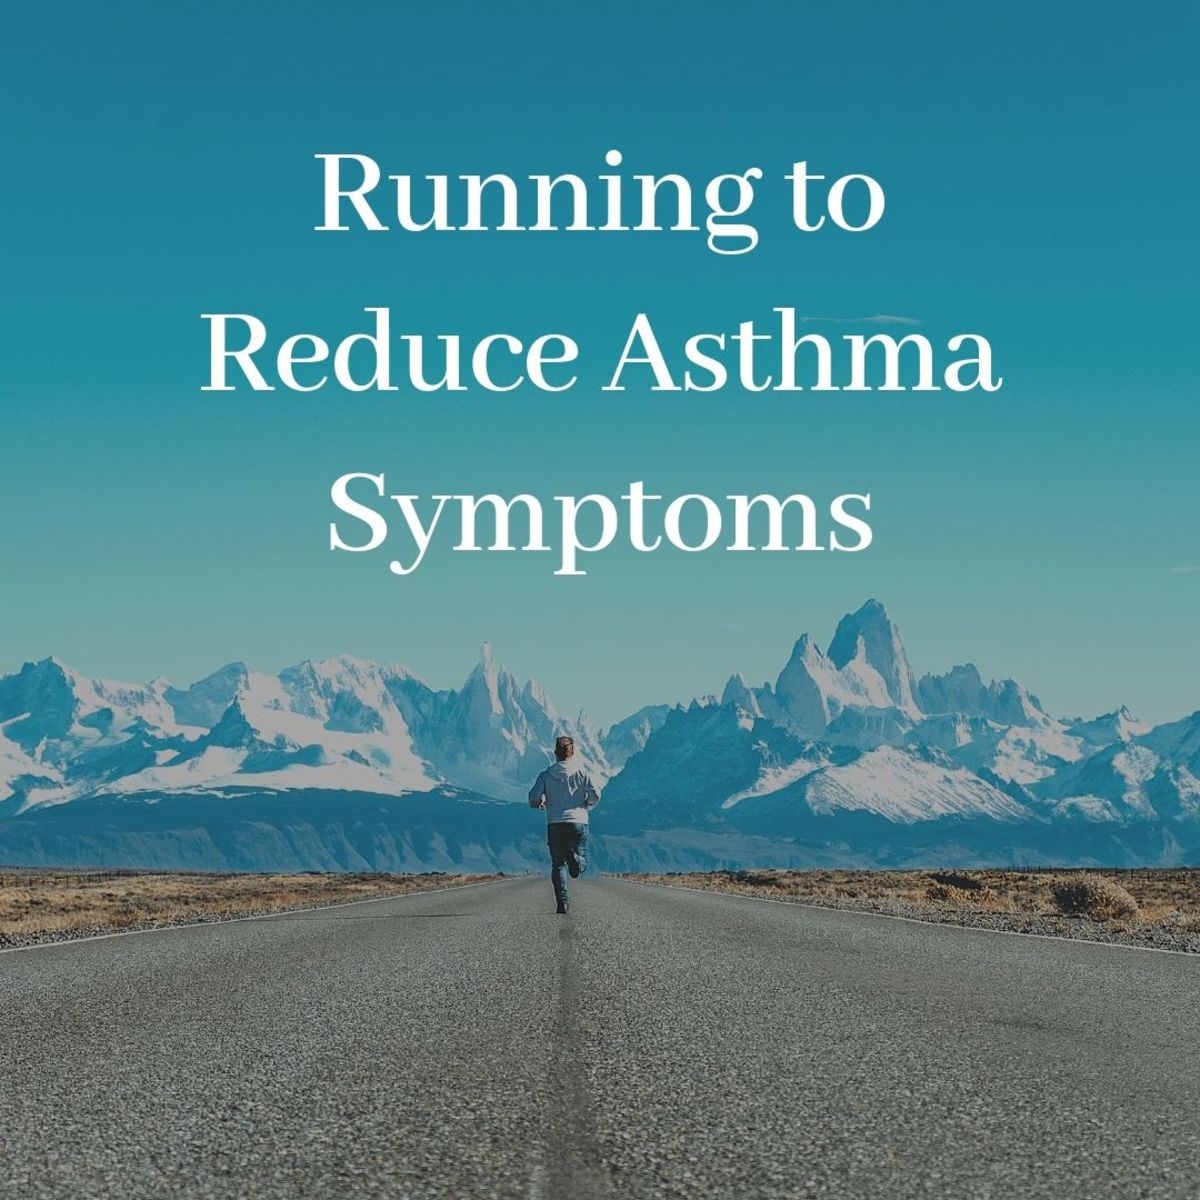 Learn why running can help relieve your asthma symptoms